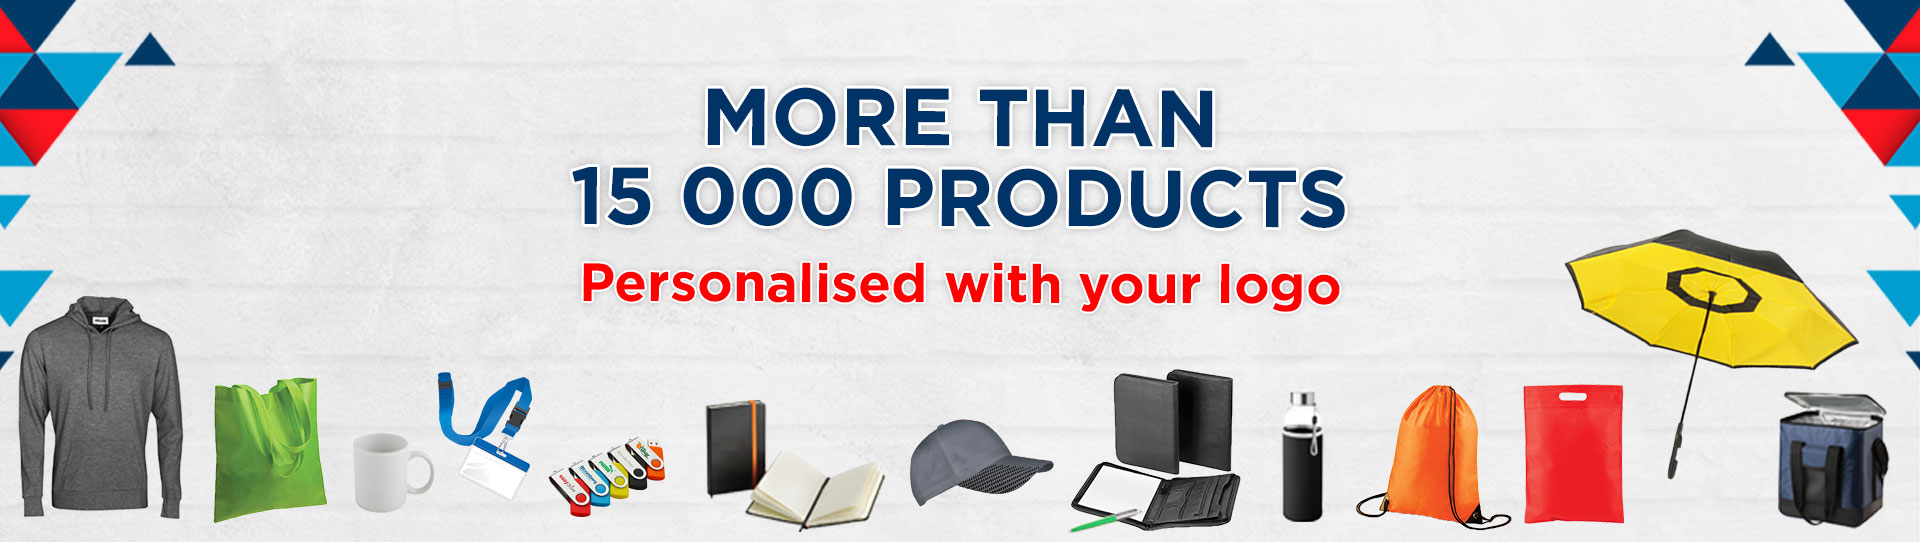 More than 15000 products